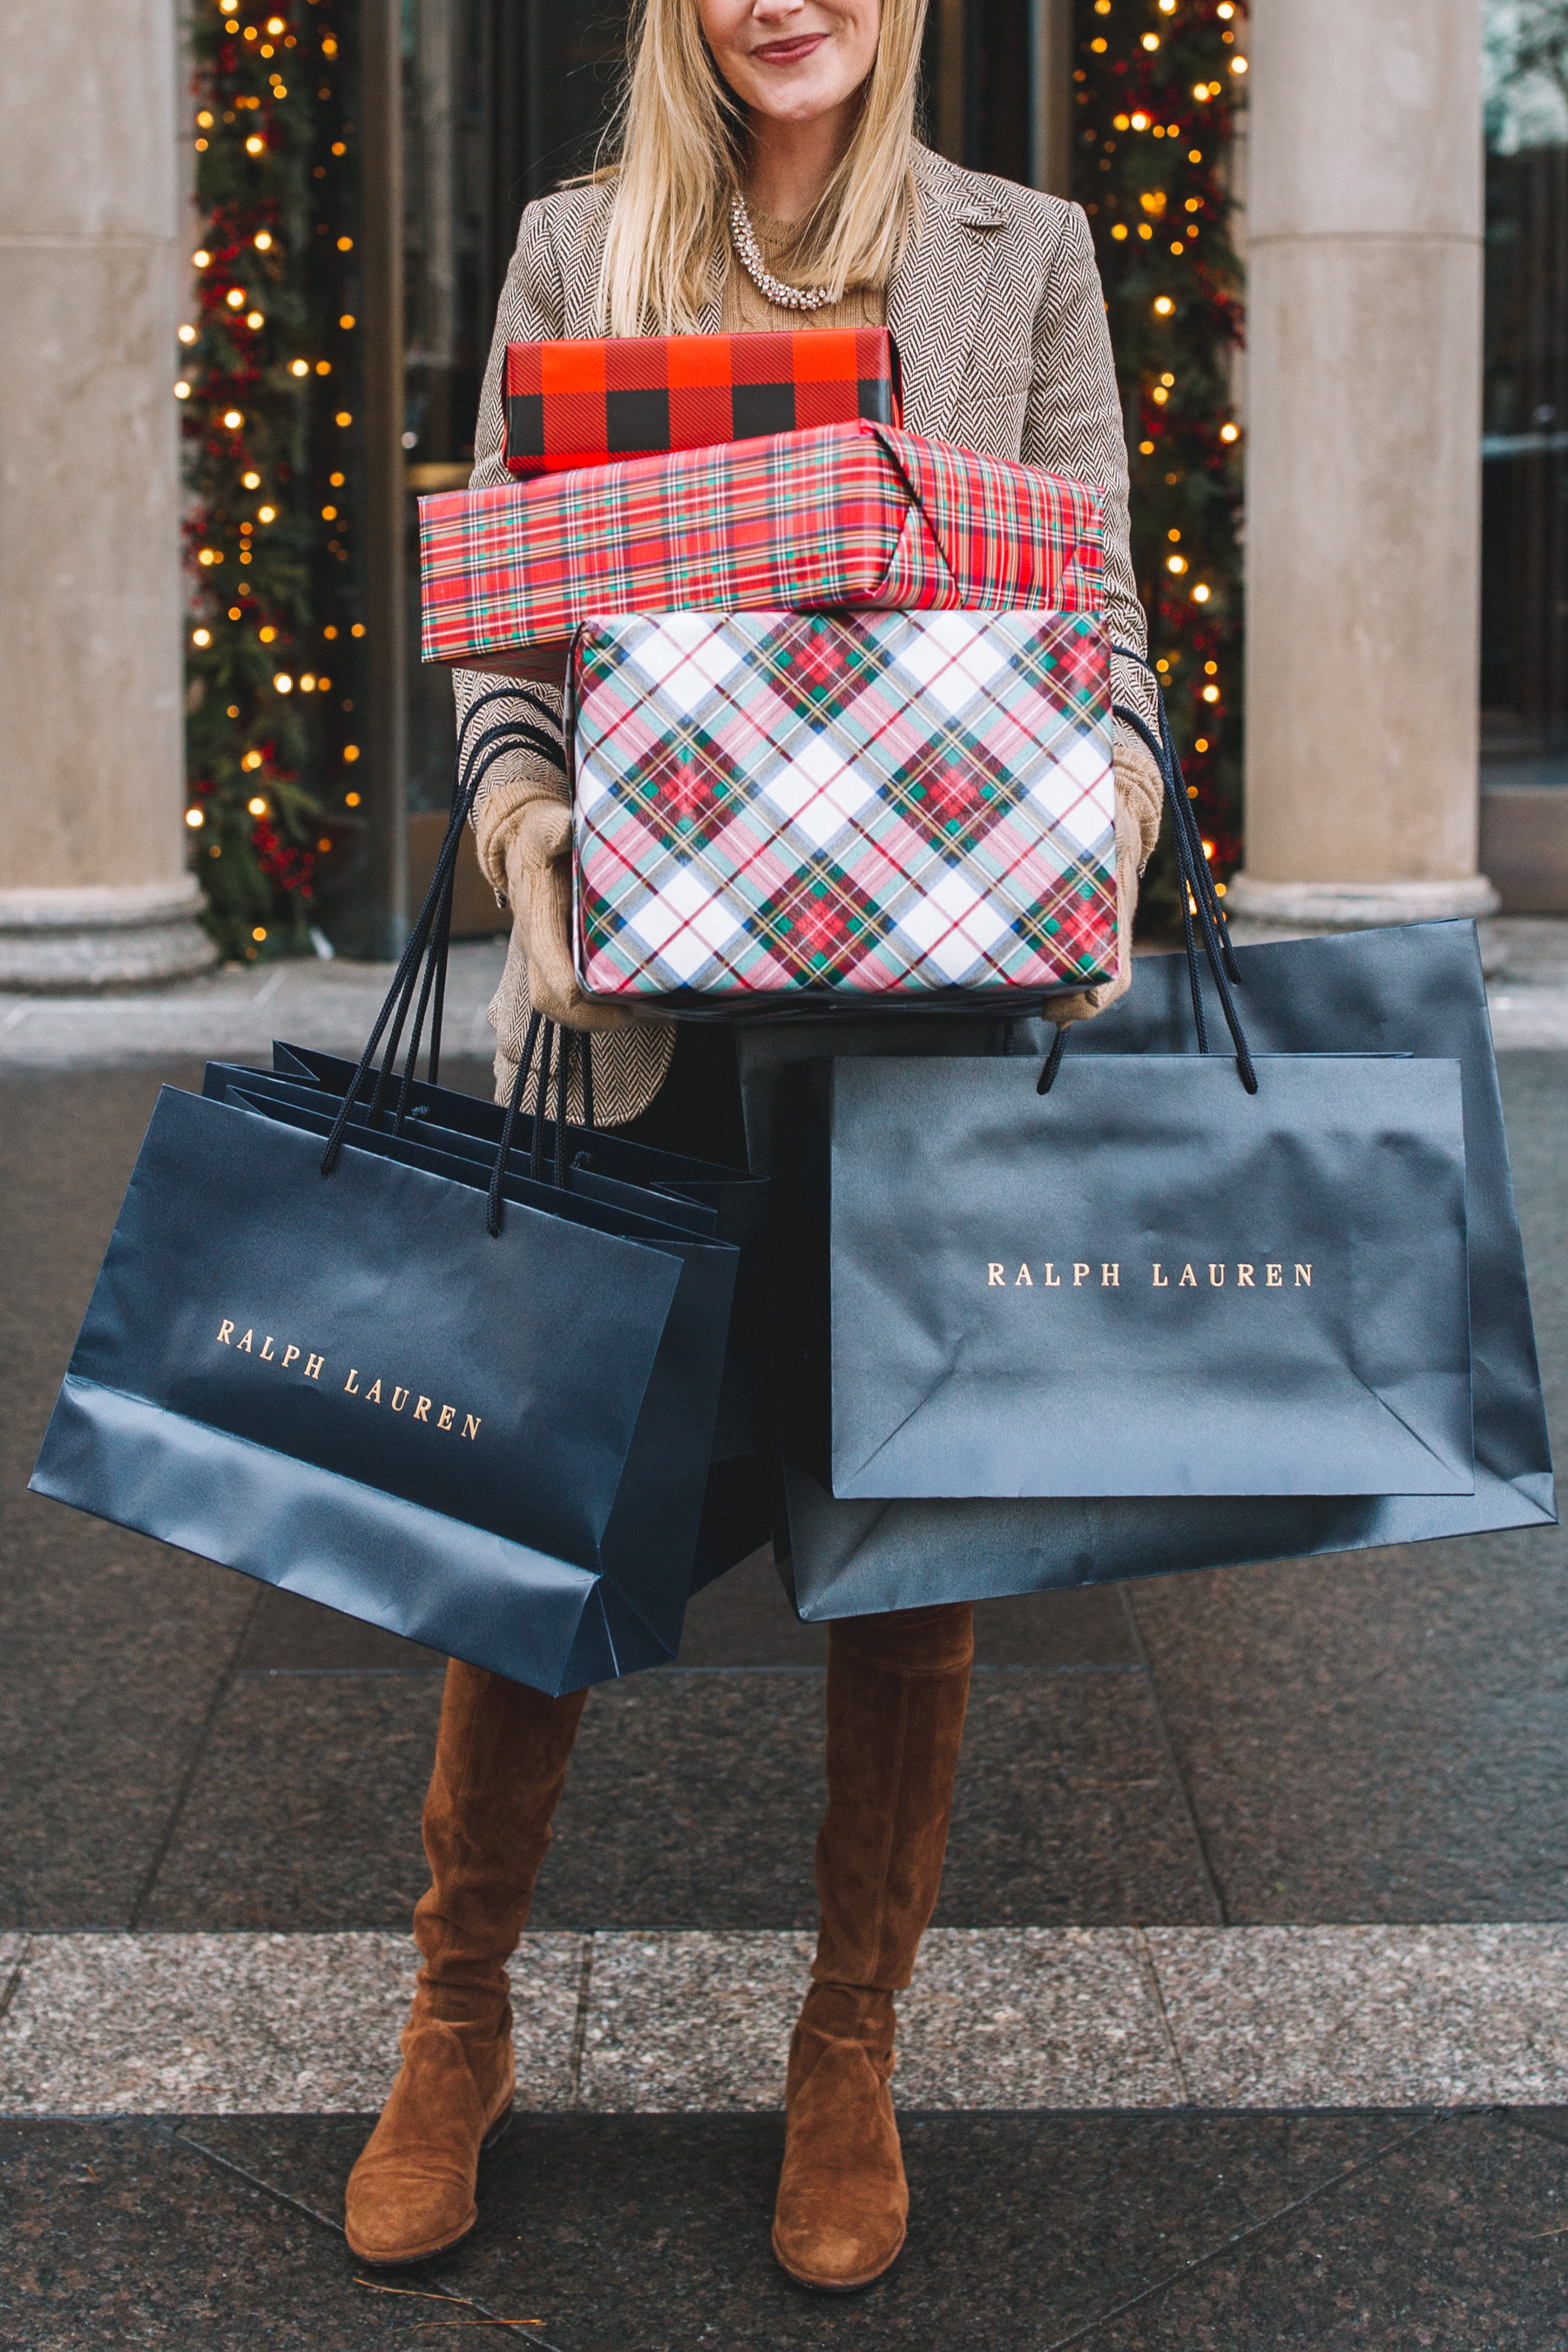 Ralph Lauren Xmas Shopping